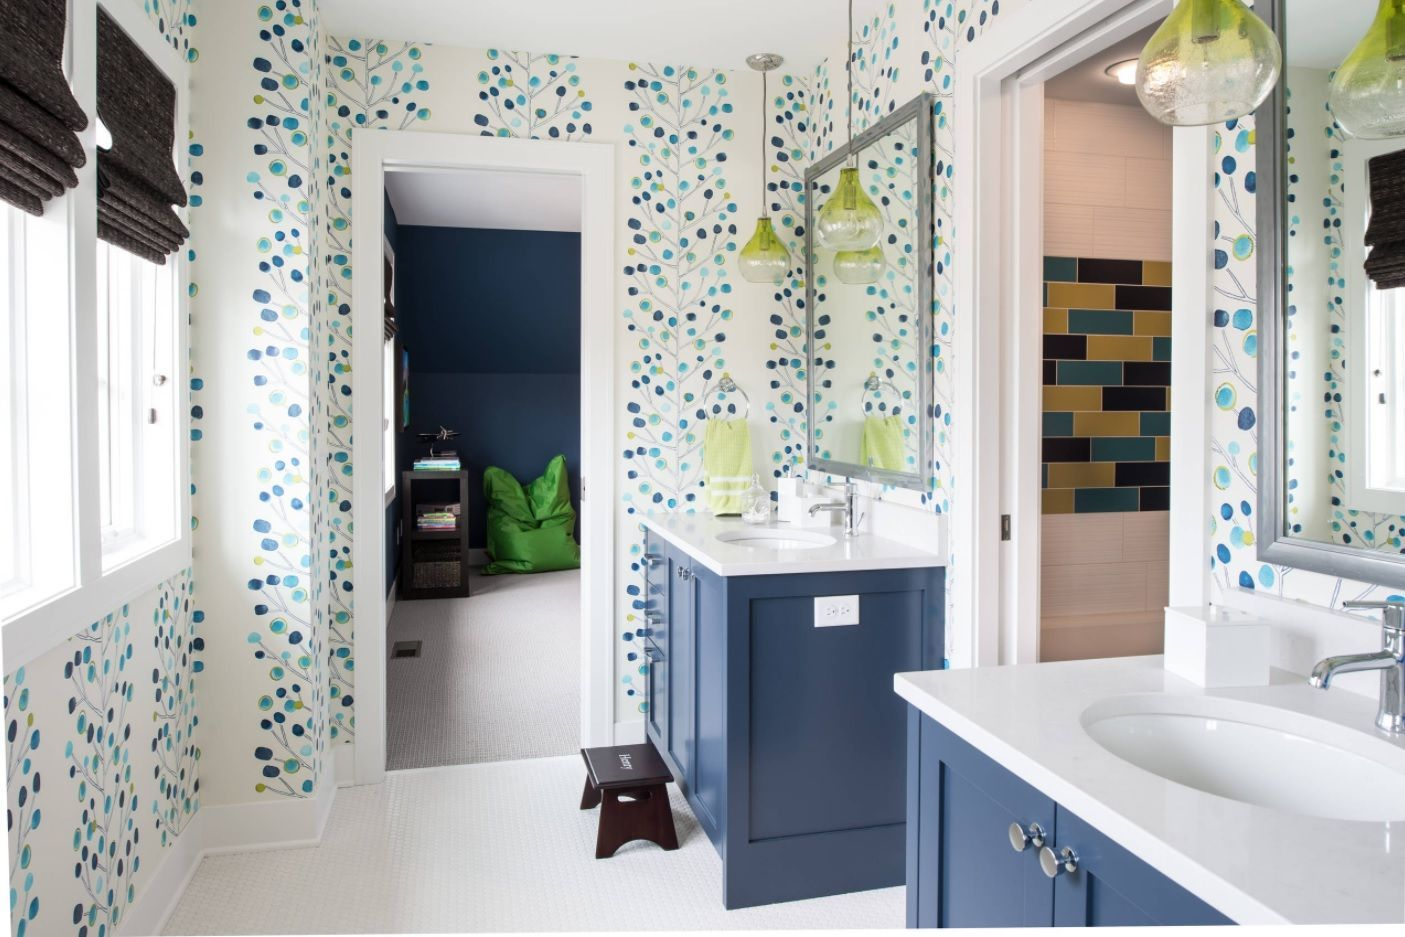 Jack And Jill Bathroom Interior Design Ideas. Spotty Green U0026 White Design  Of The Classic